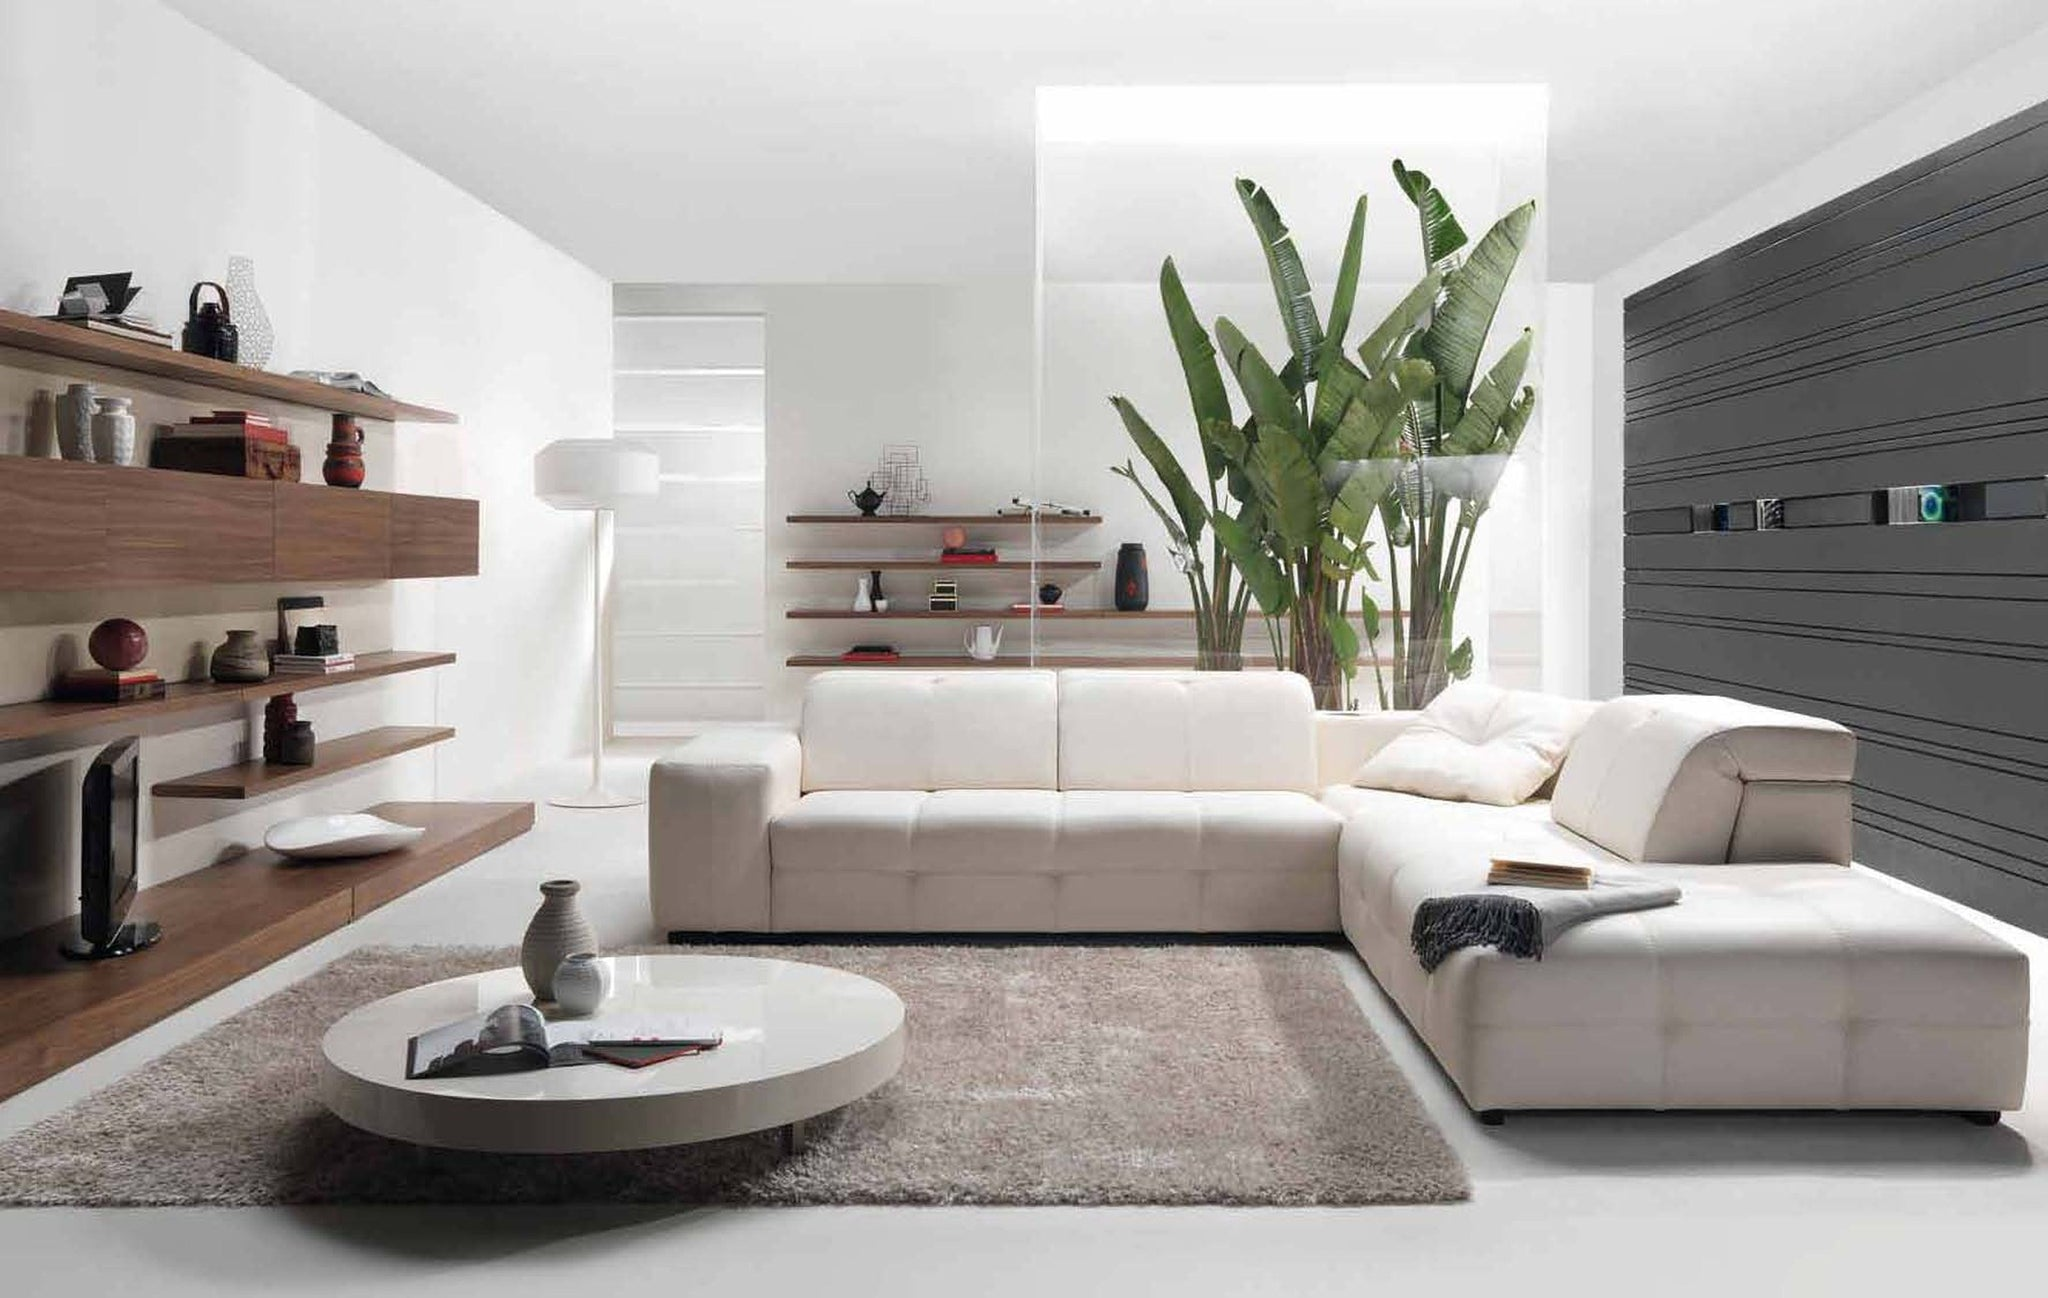 5-MODERN HOME DECOR IDEAS | VERA DE NERO